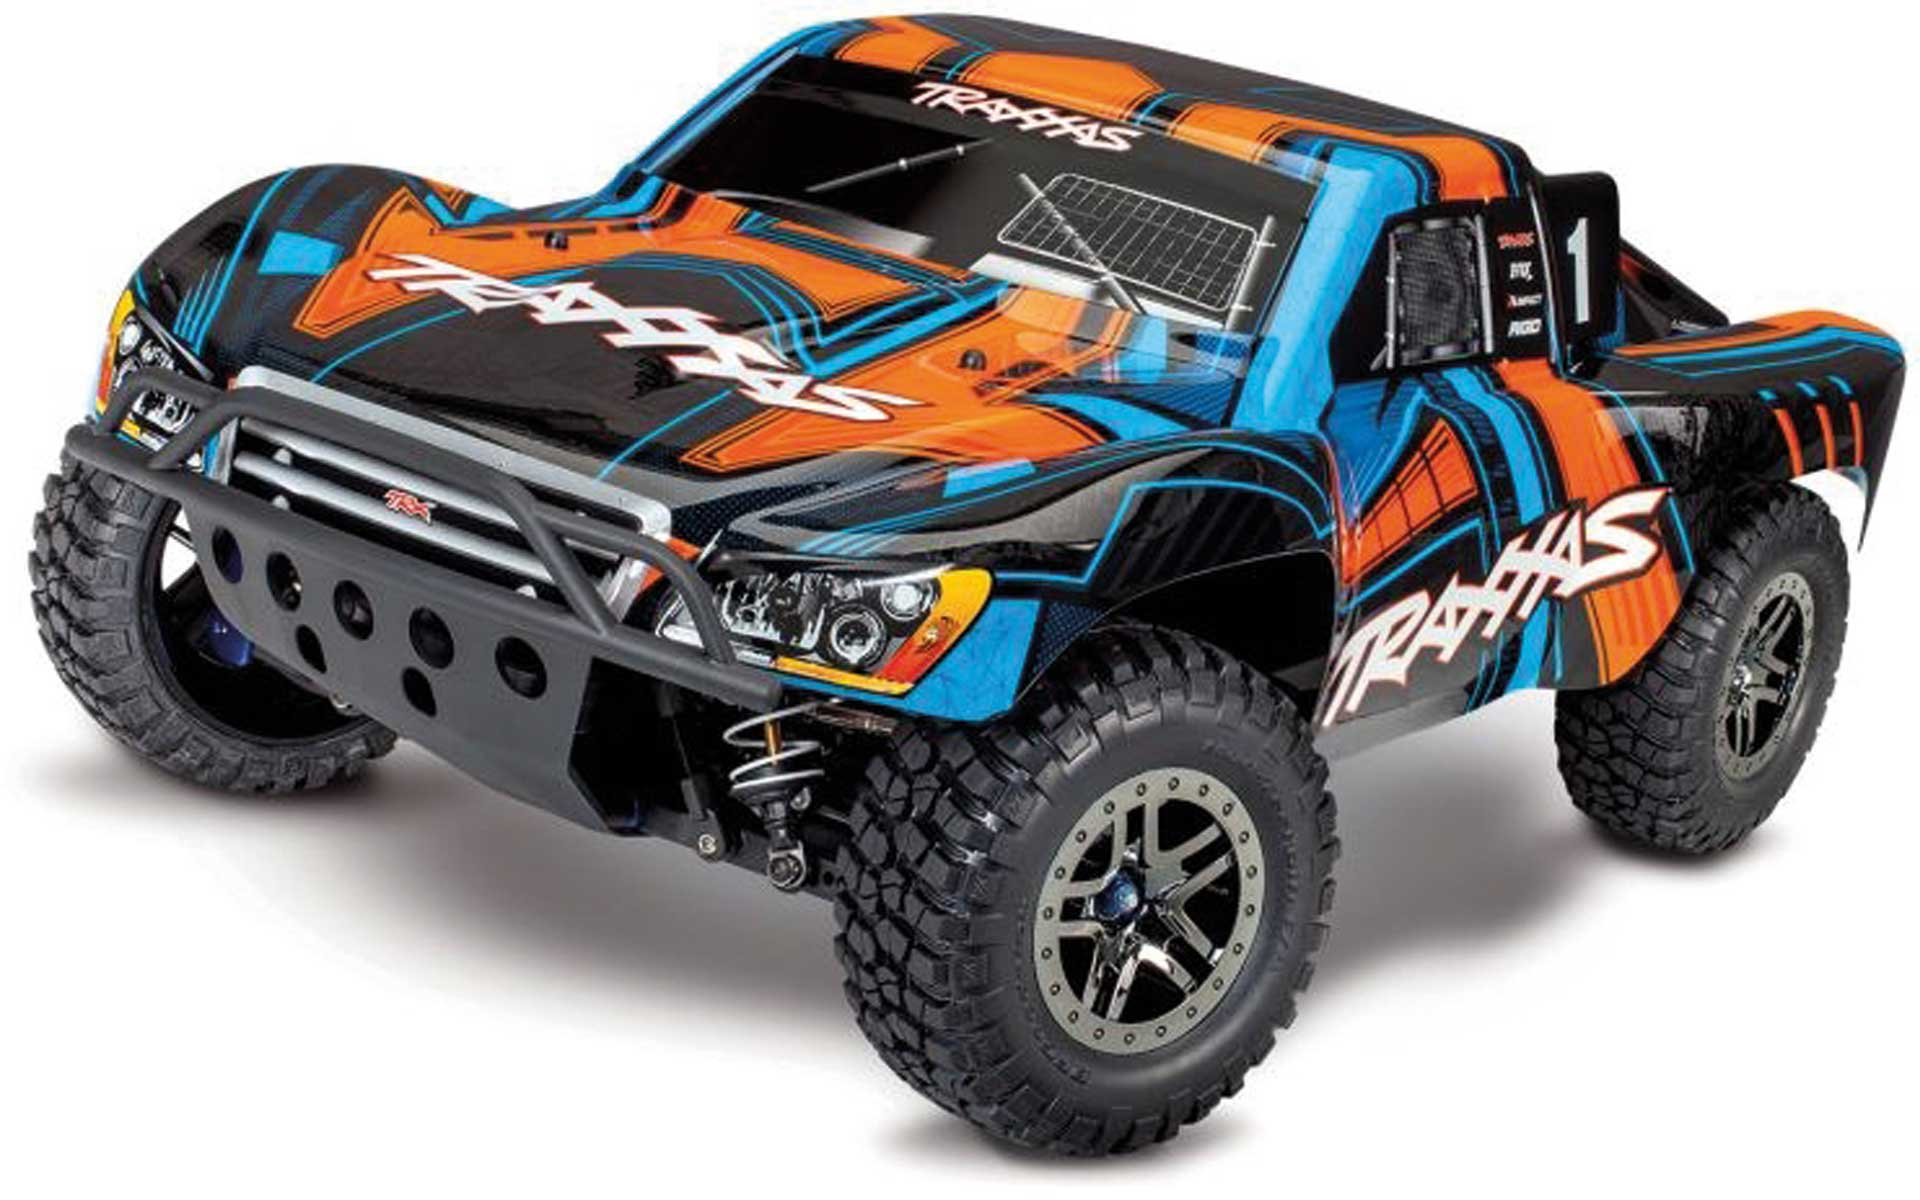 Traxxas SLASH 4X4 VXL ULTIMATE ORANGE RTR OHNE AKKU/LAD ER 1/10 4WD SHORT-COURSE-RACE-TRUCK BRUS